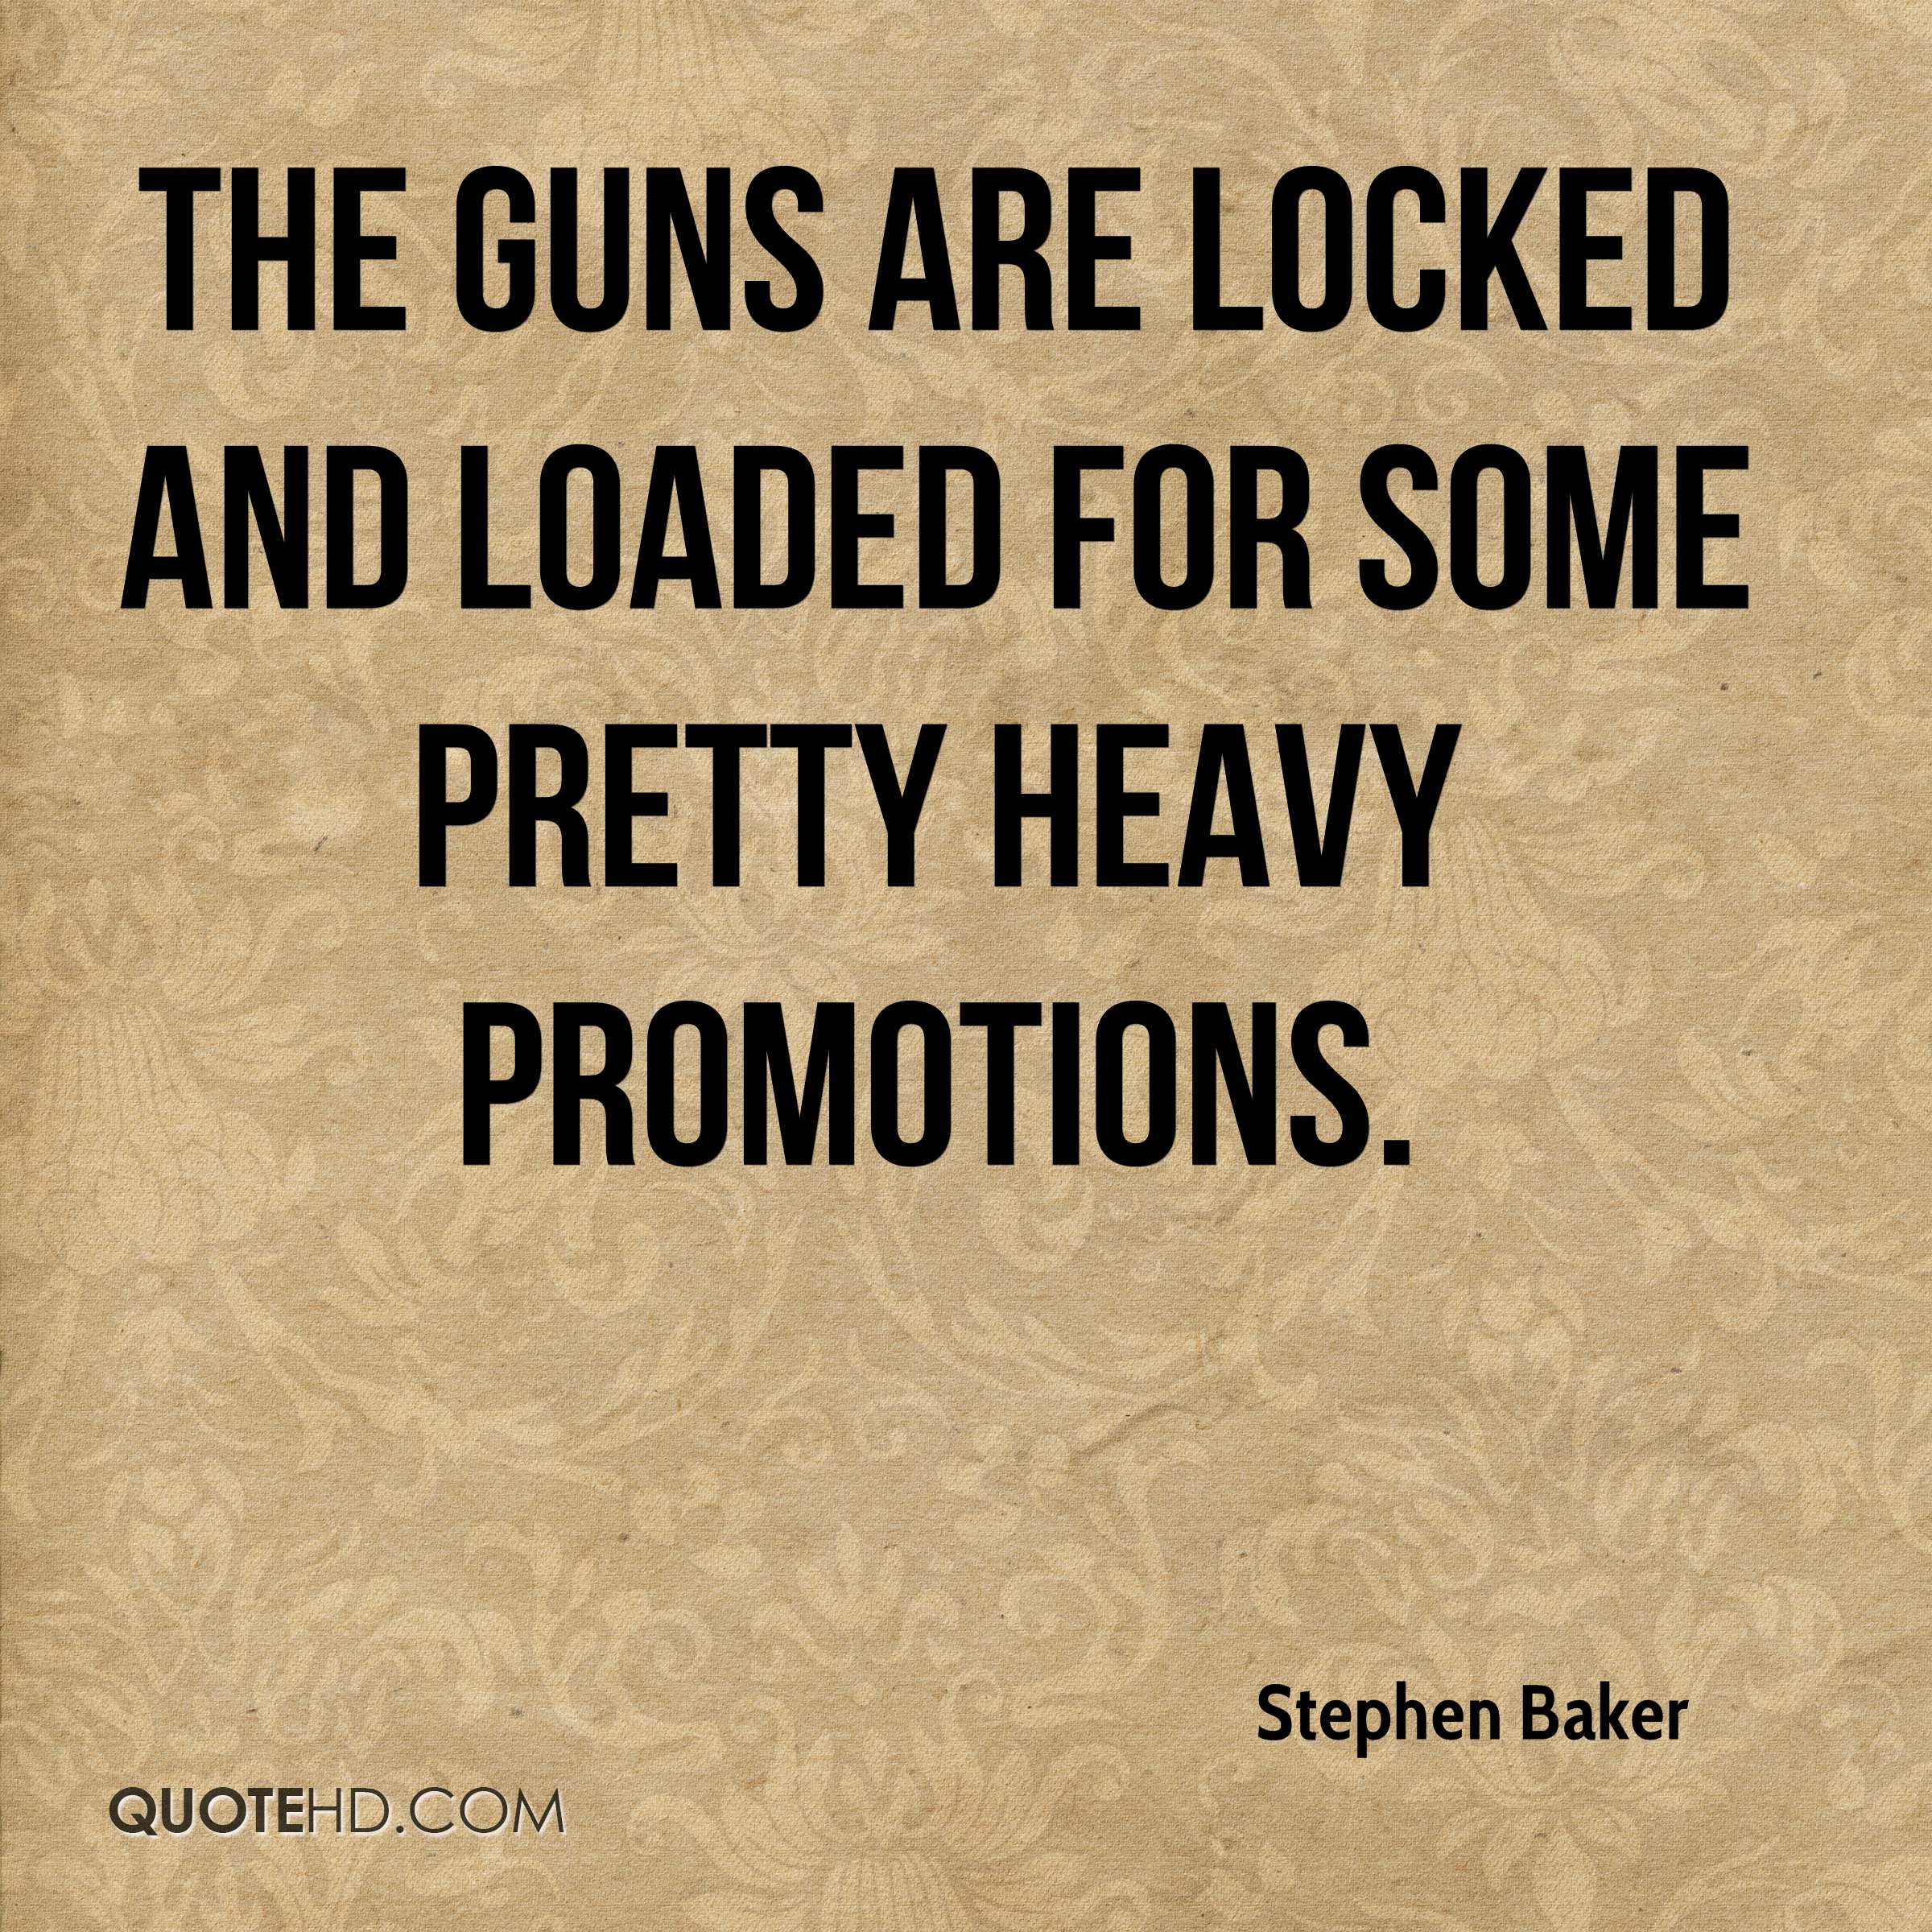 The guns are locked and loaded for some pretty heavy promotions.